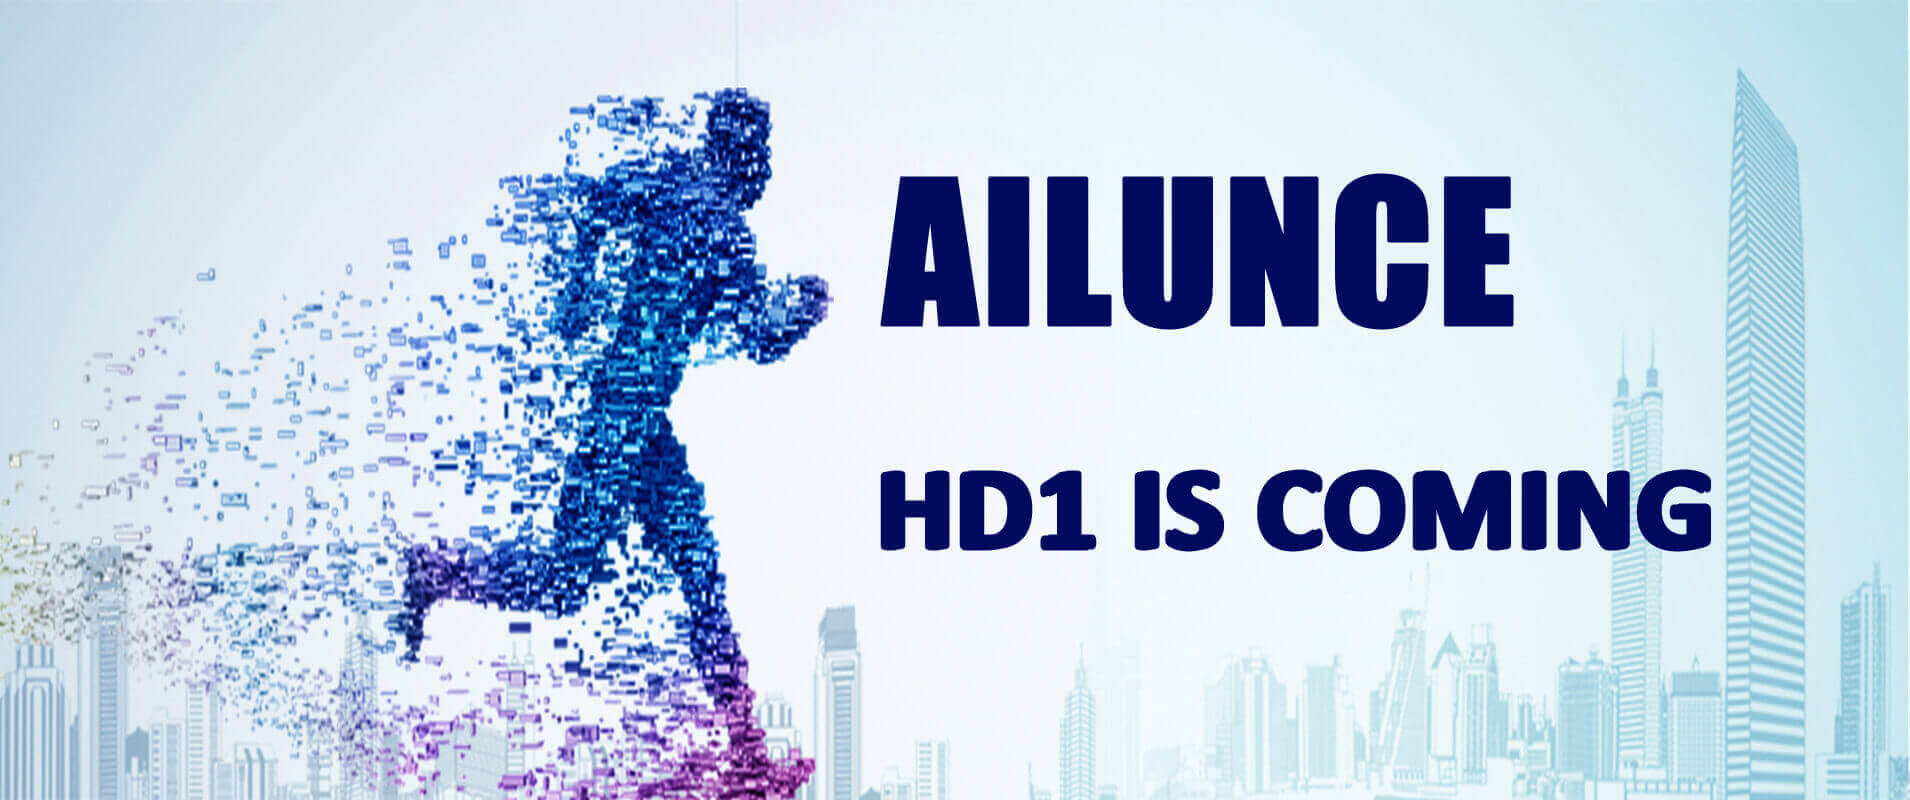 HD1-is-coming